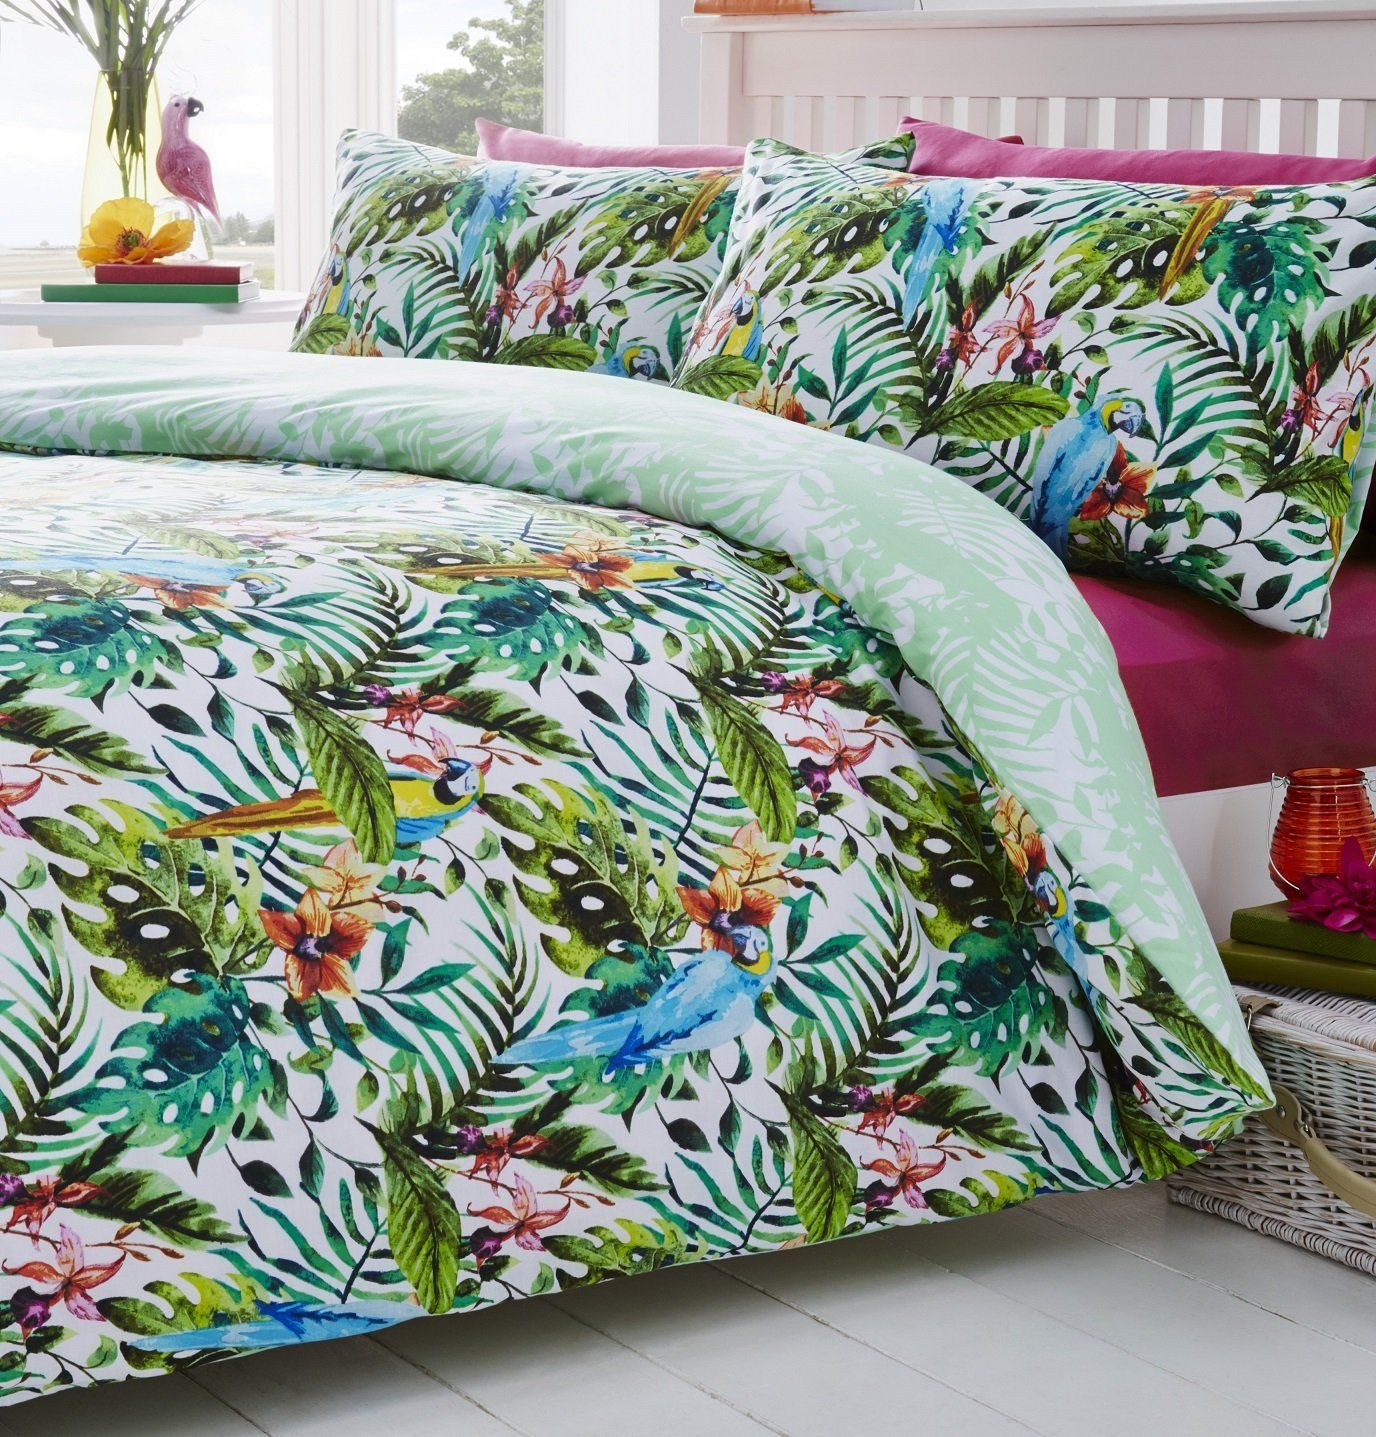 tropical jungle oiseaux couette imprim r versible housse. Black Bedroom Furniture Sets. Home Design Ideas